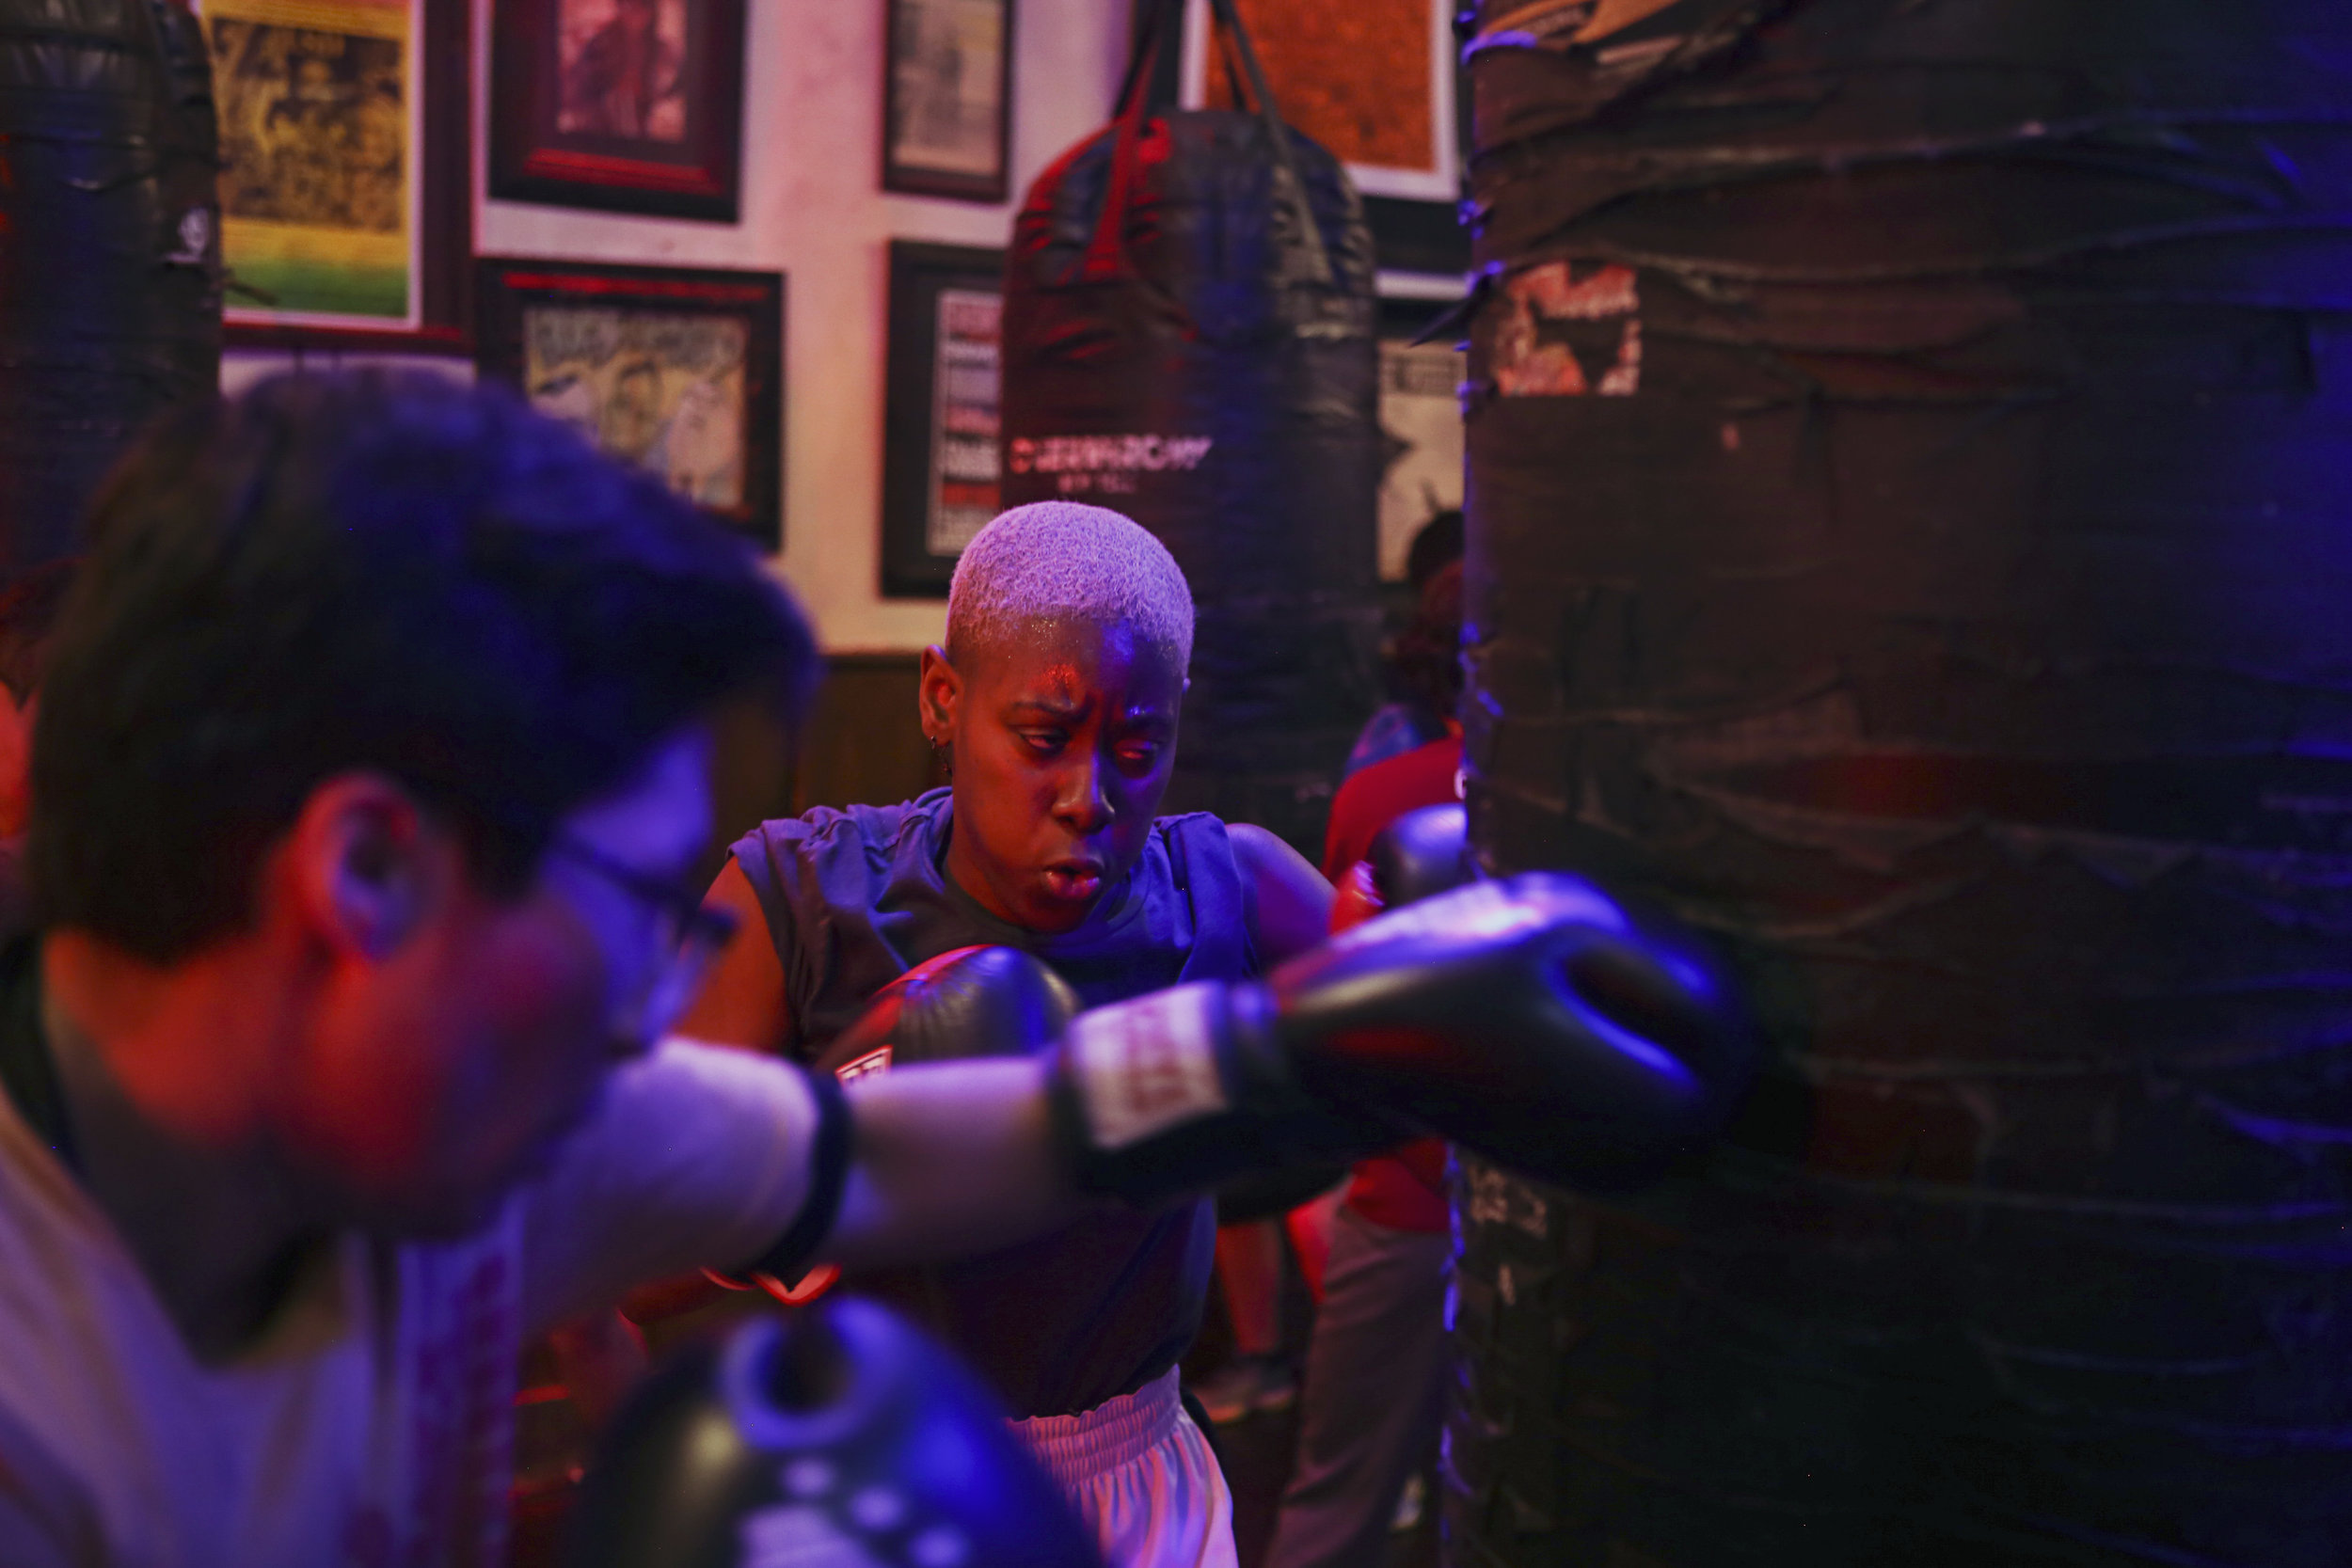 A Boxing Club That Helps Trans People Embrace Their Bodies, for BuzzFeed News - What's at stake for these amateurs, rather than prize money or televised glory, is something more personal, and more interior. Boxing has become a way for the collective's members to bend and shape their own understandings of the masculine, the feminine, and the in-between. It's a way to reckon with their shape and muscle, and with who they are within their bodies.